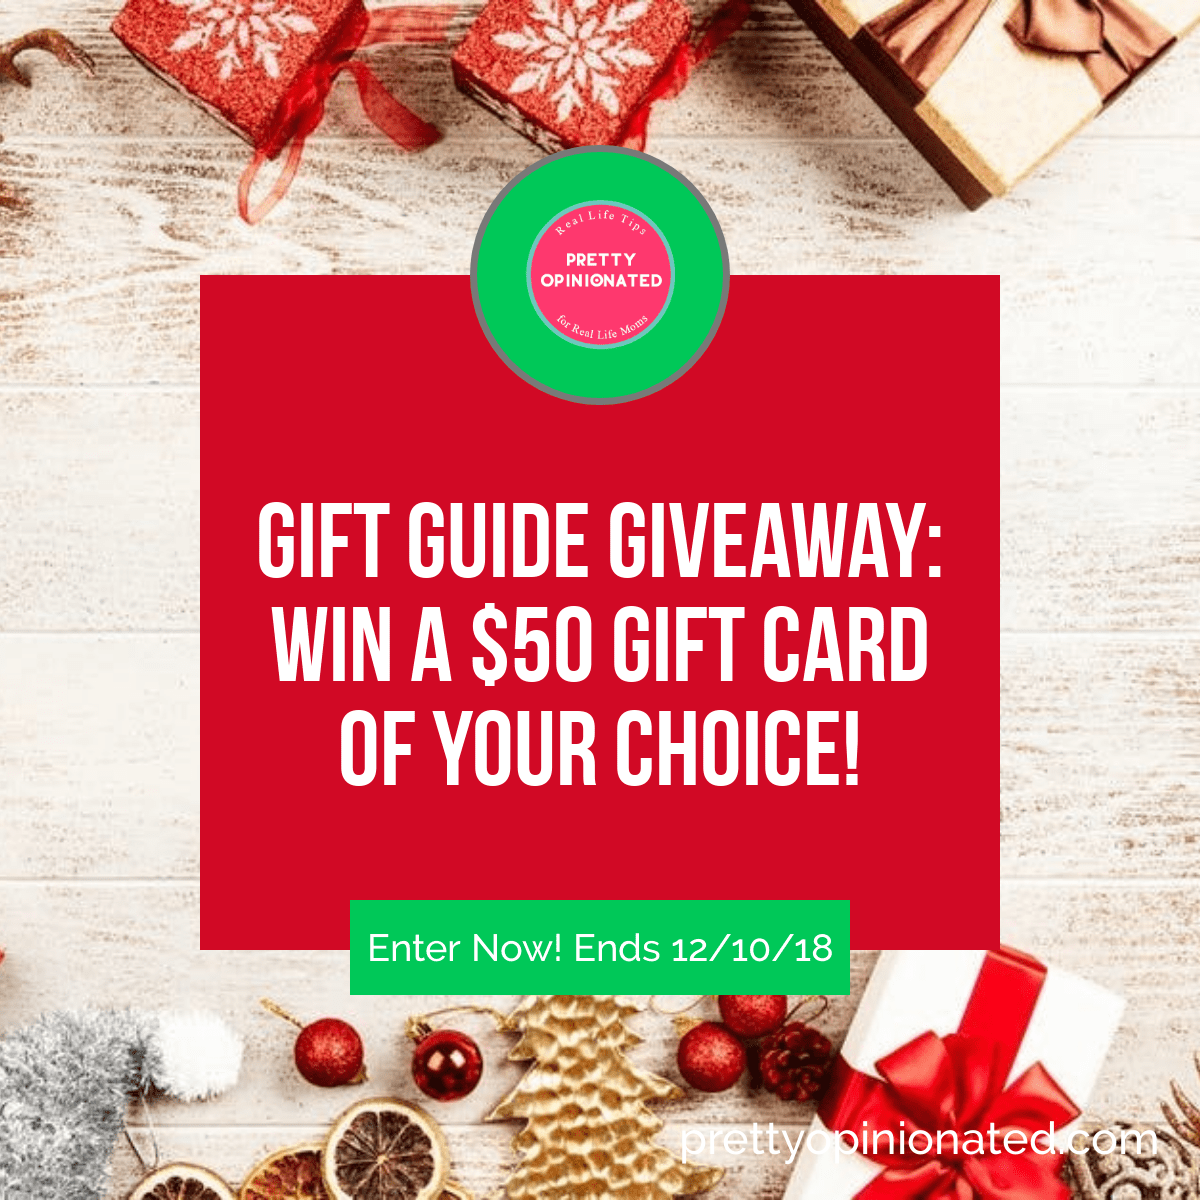 Kick off the holiday shopping season with a fun giveaway! Enter for a chance to win a $50 gift card to any store of your choice! Check it out! Ends 12/10/18. Good luck!